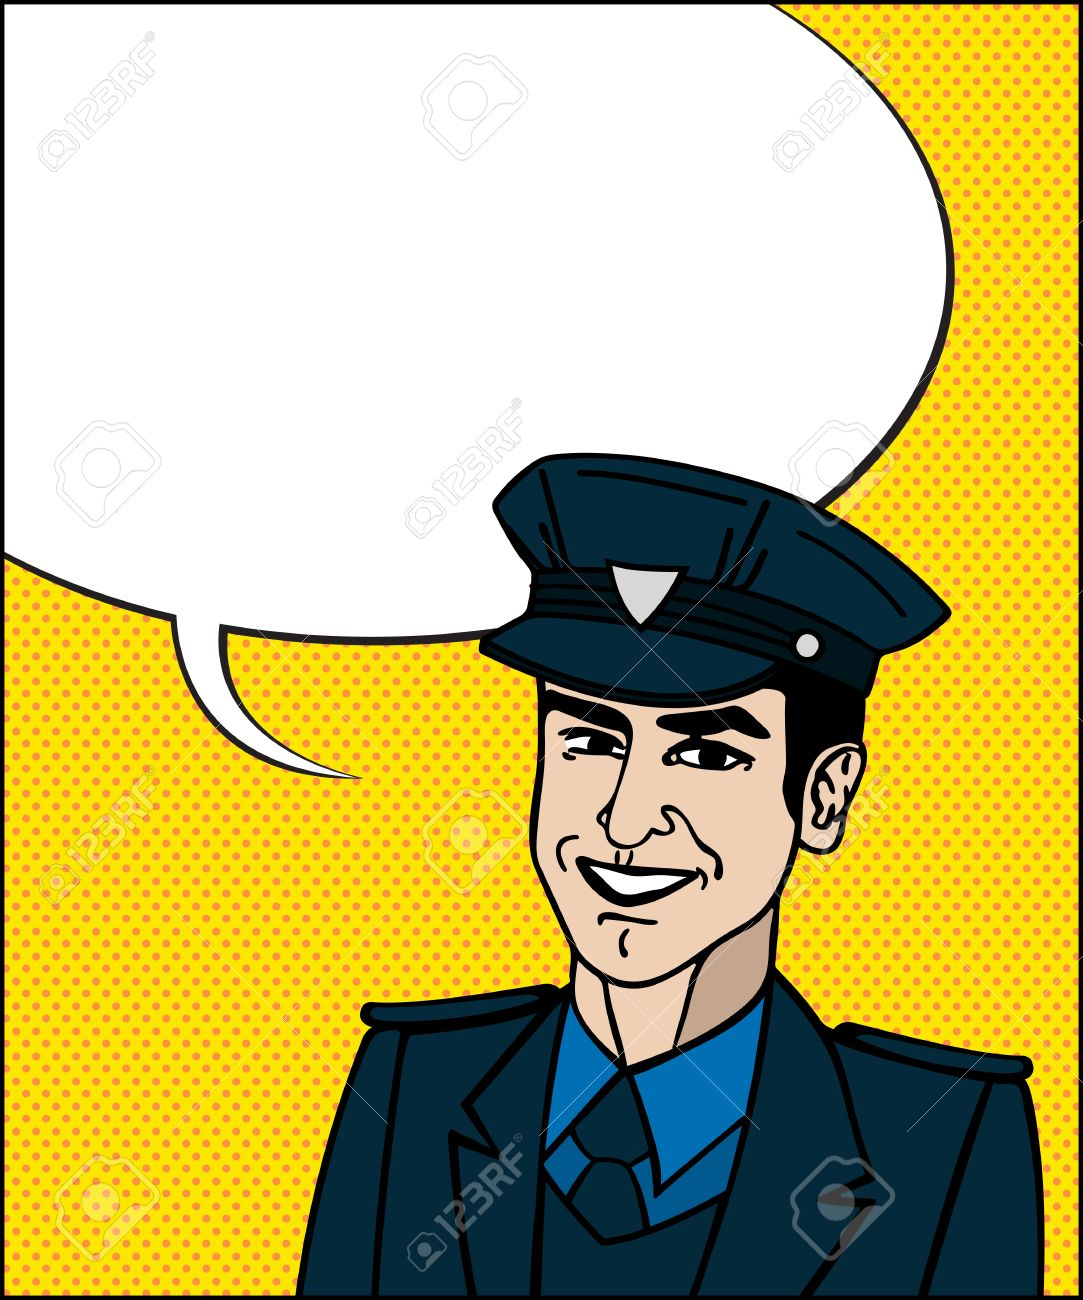 1083x1300 Comic Style Drawing Of A Police Officer Friendly Face With Speech